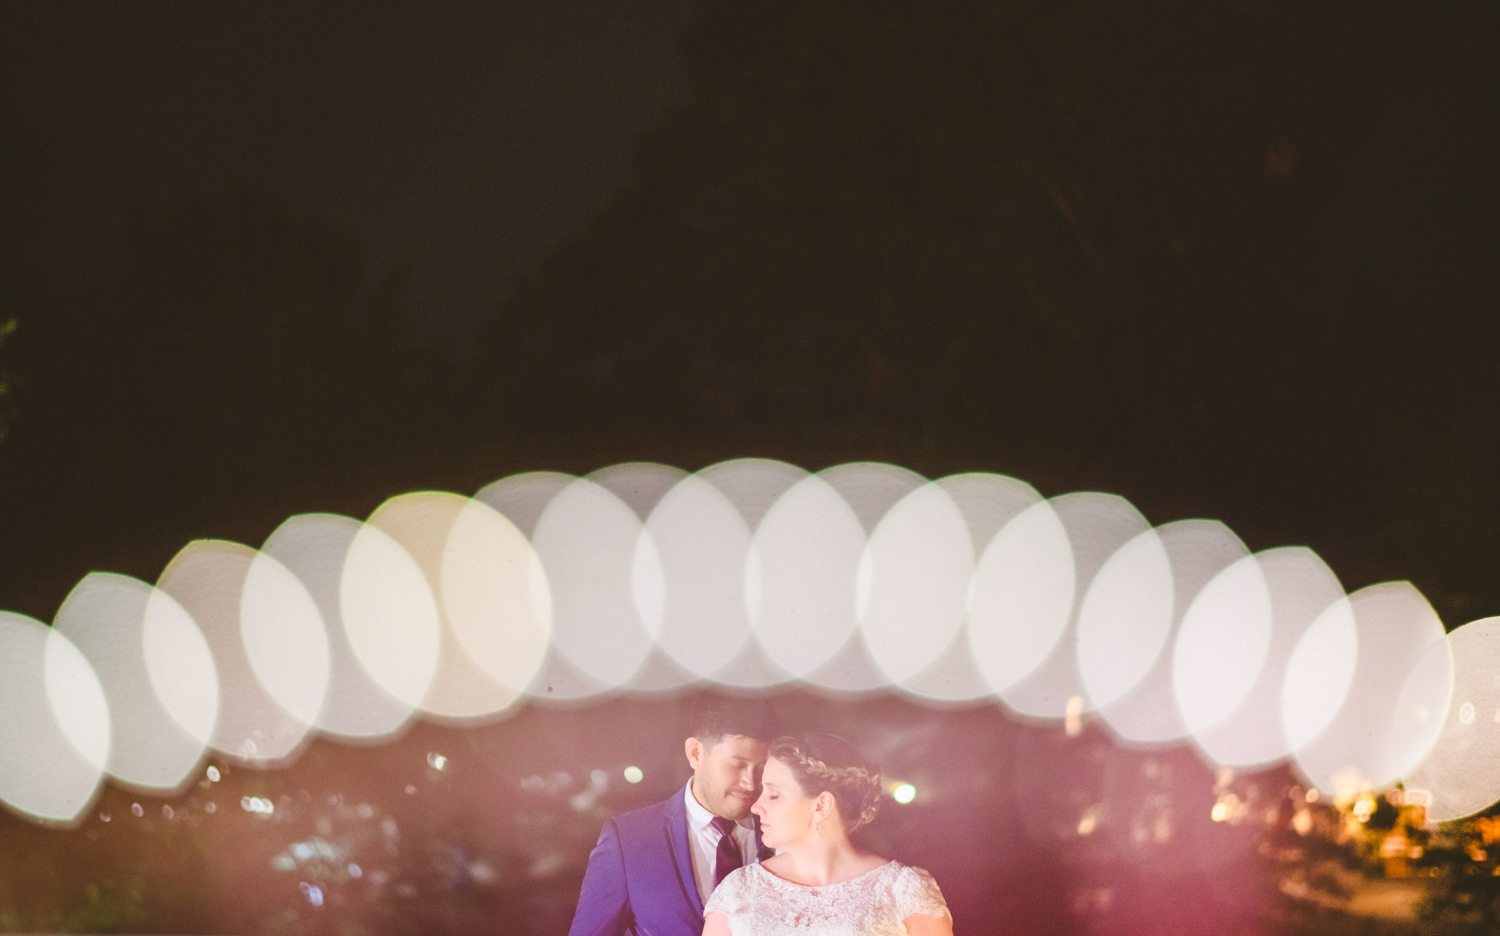 042 - night portrait double exposure bride and groom glen echo maryland.jpg